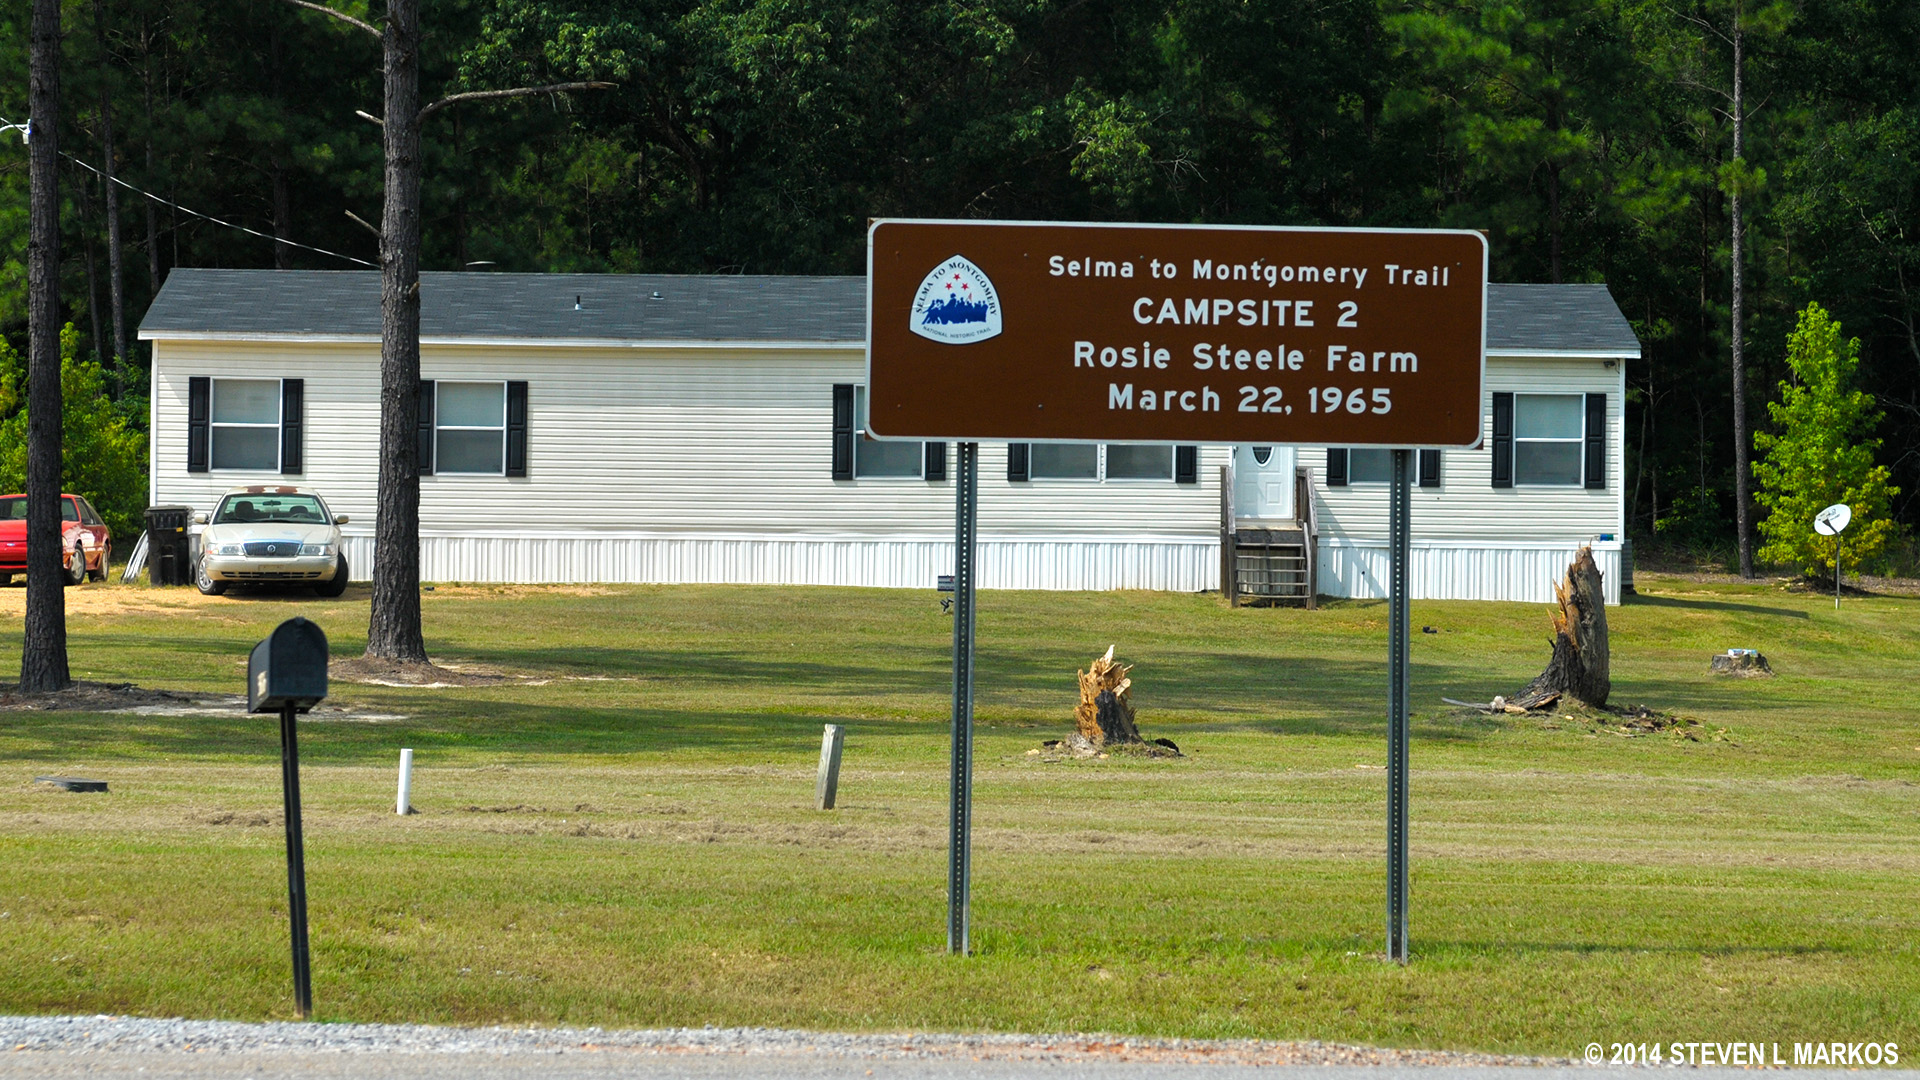 After travelling around 10 miles on March 22, 1965, the marchers chose the Rosie Steele farm along Highway 80 as there second campsite.